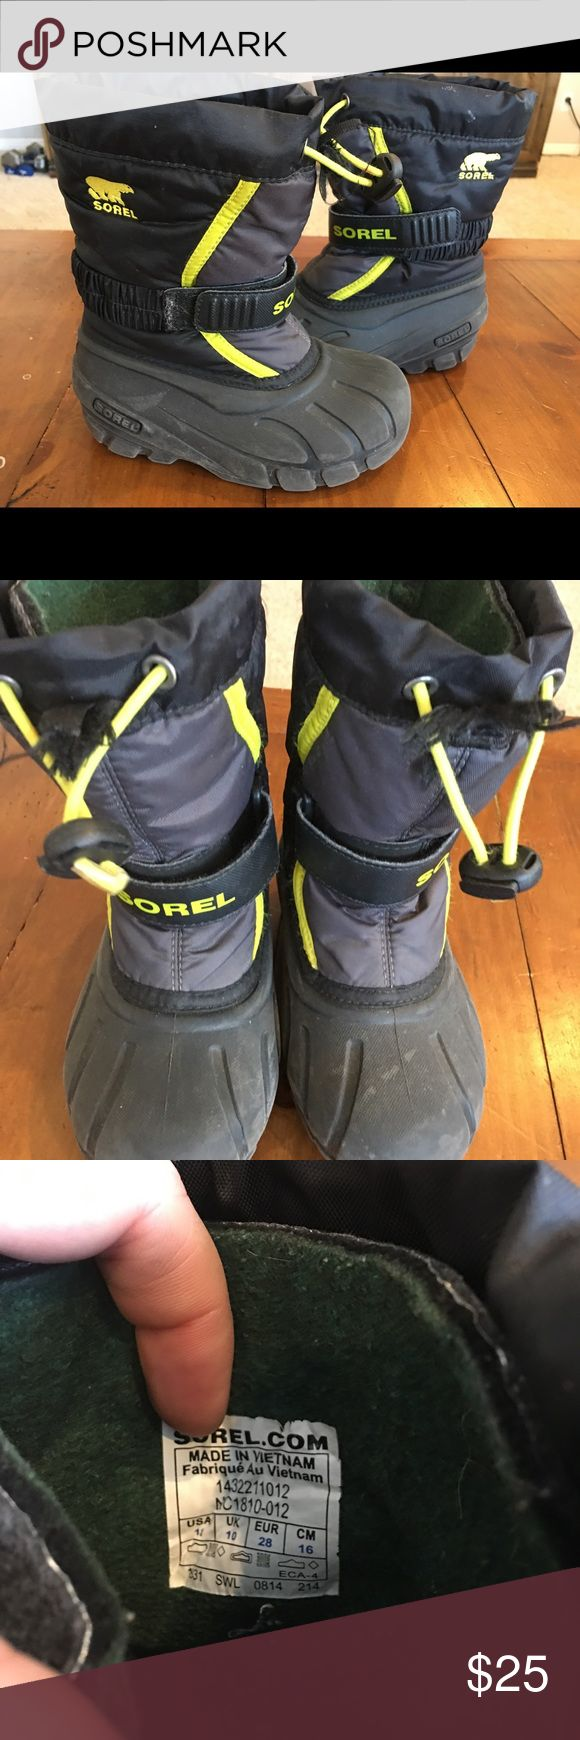 Sorel kids snow boots size 11 Used for 1 winter kids Sorel snow boots. Velcro front and elastic to adjust them. sorel Shoes Rain & Snow Boots